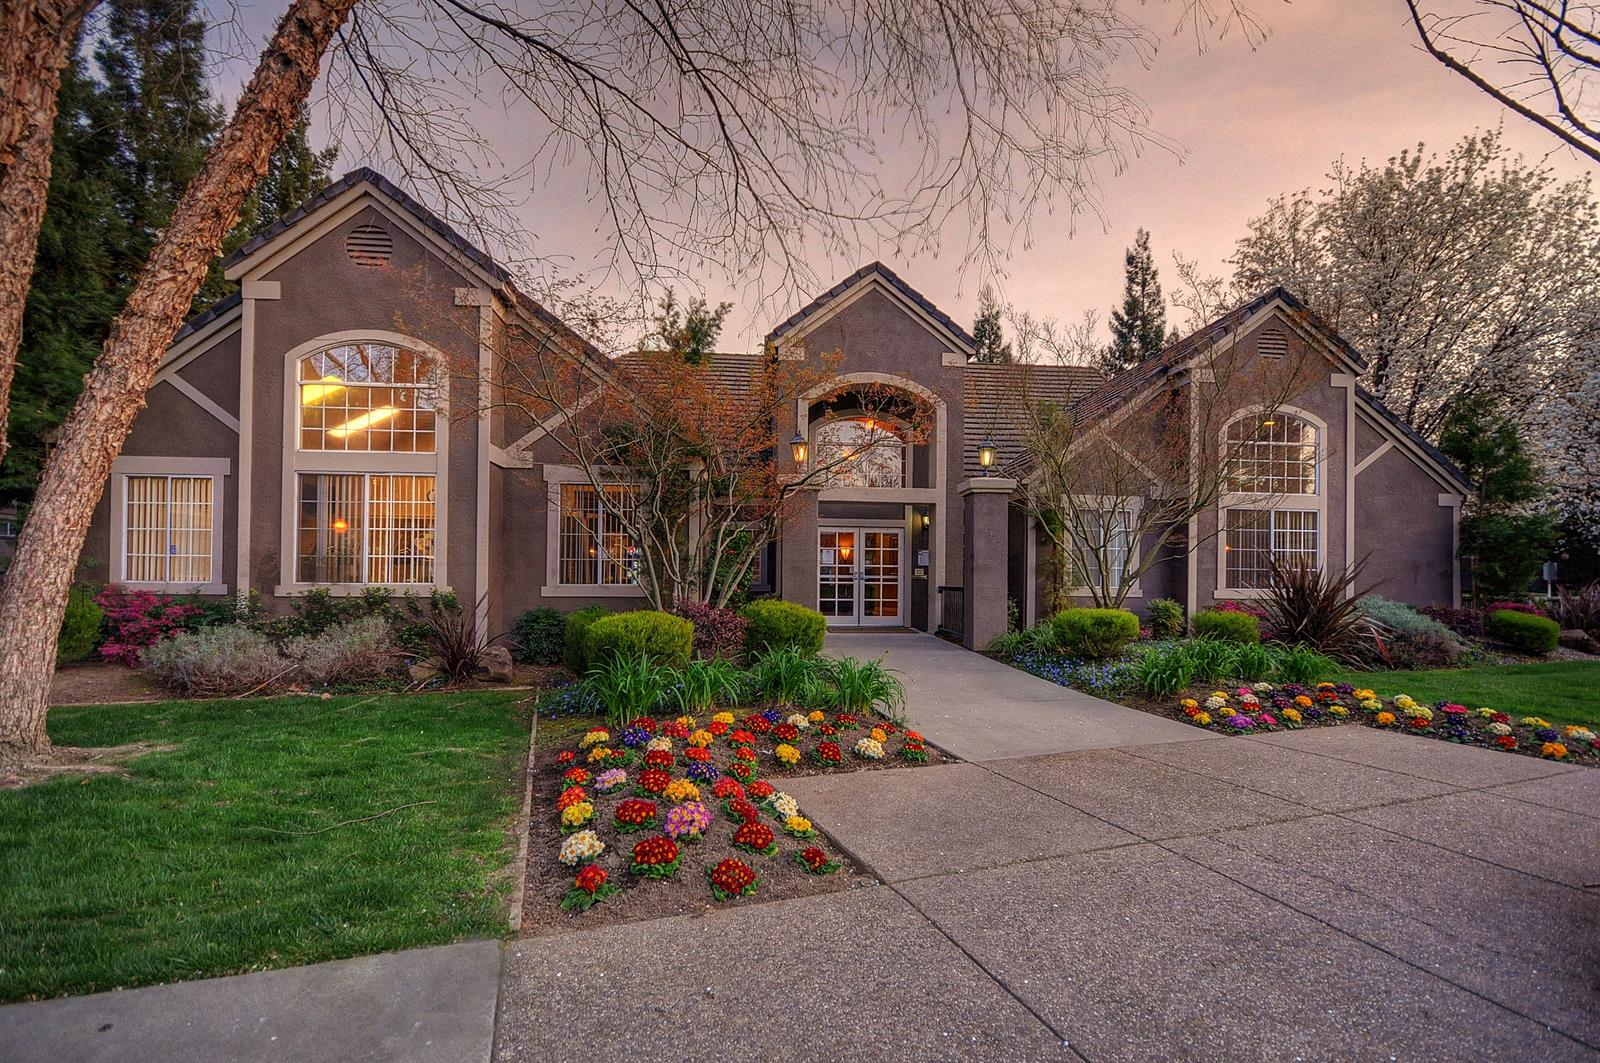 california home designs%0A Resort Style Community at Larkspur Woods Apartment Homes  Sacramento